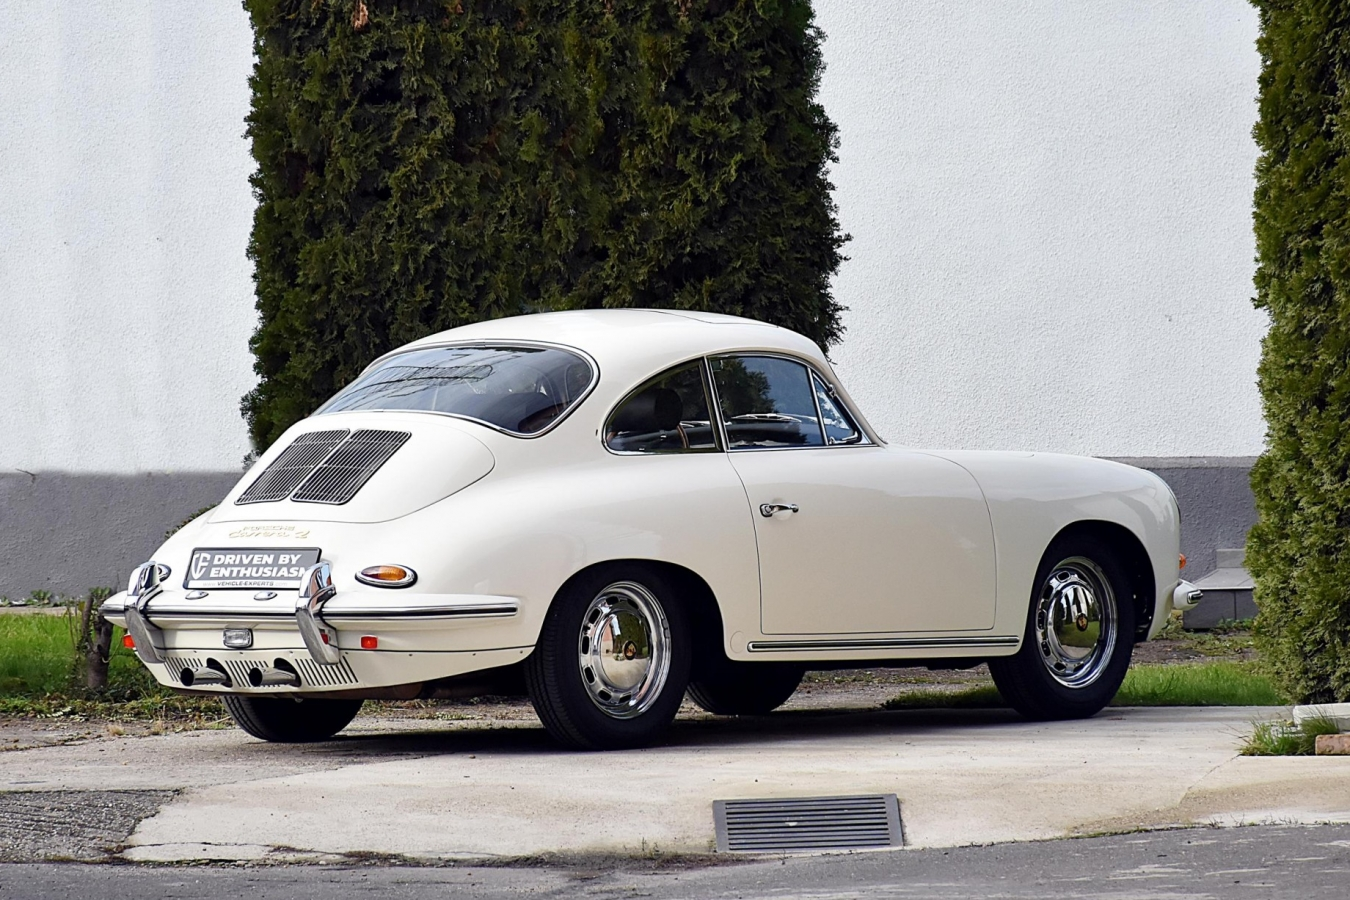 Porsche 356 C 2000 GS Carrera 2 Coupè 41